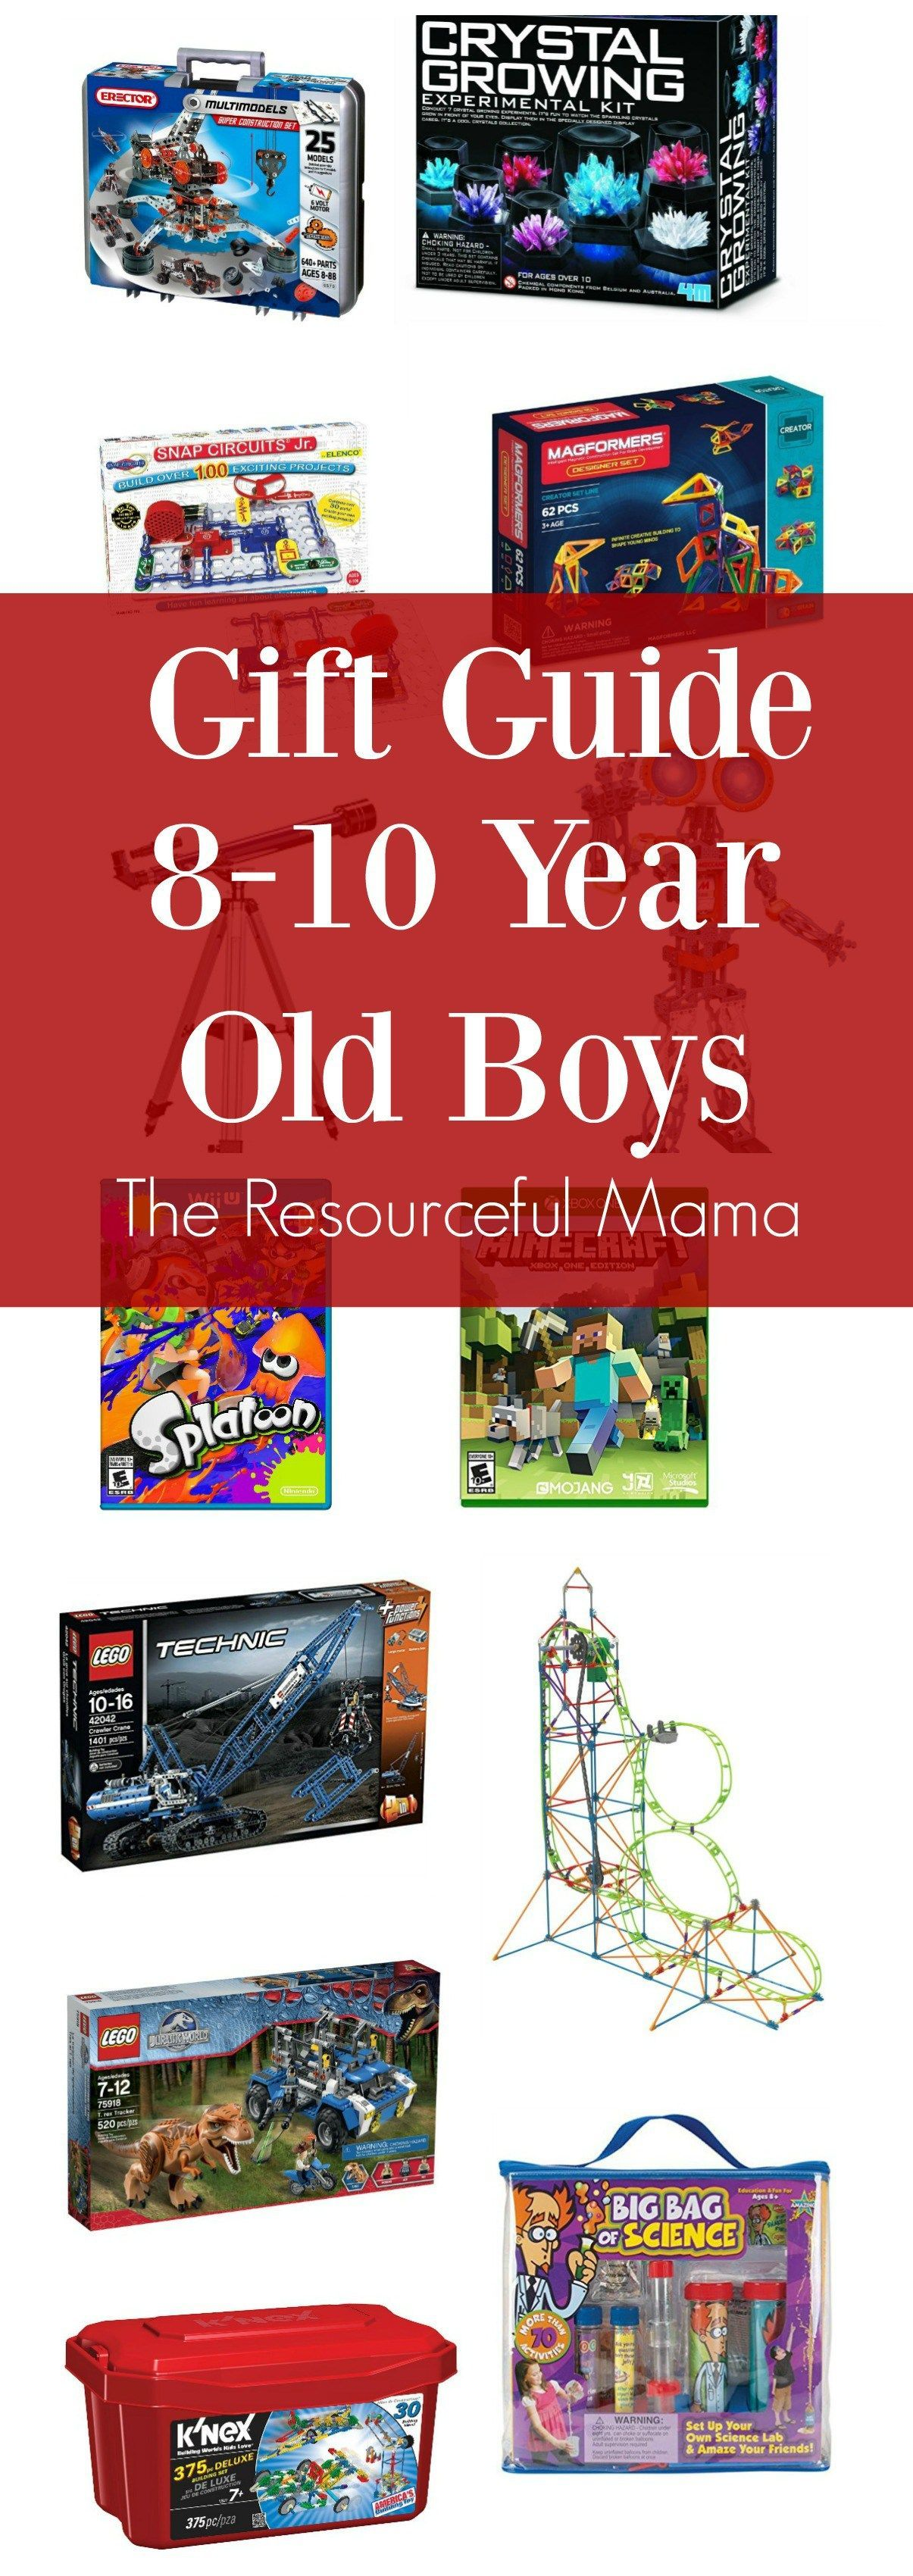 Gifts for 810 year olds, 15thBirthdayGiftIdeas